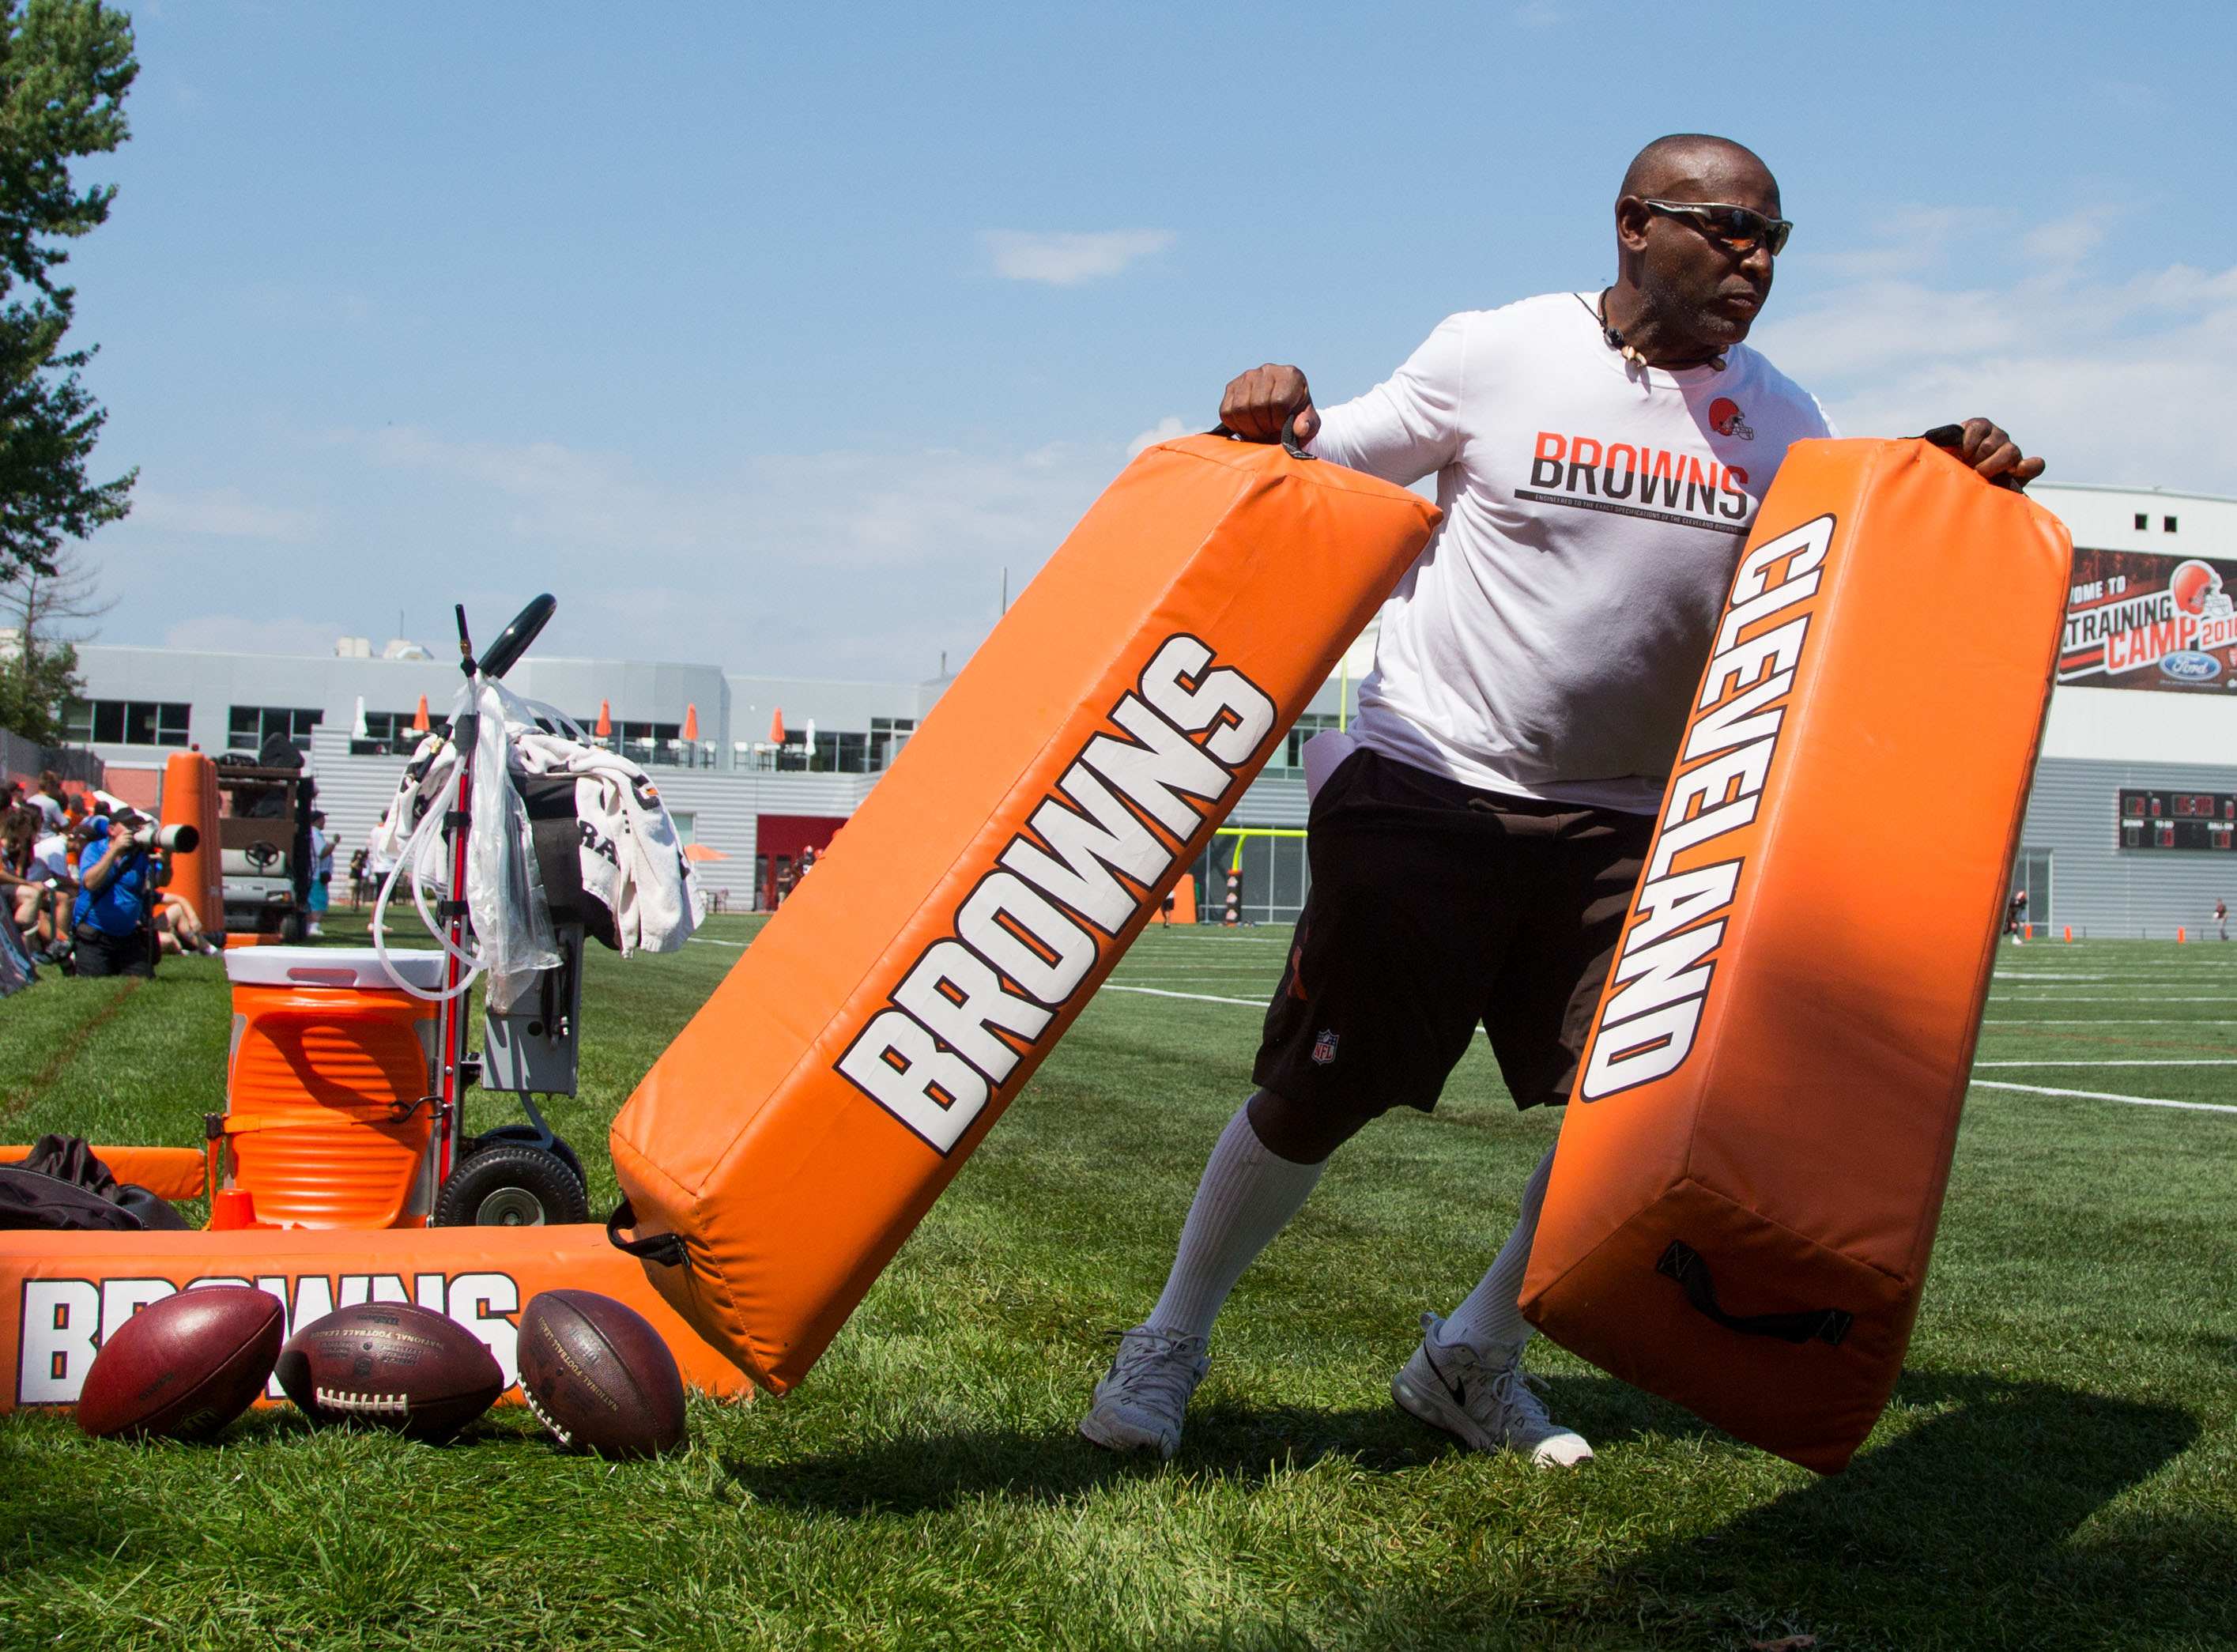 9415316-nfl-cleveland-browns-training-camp